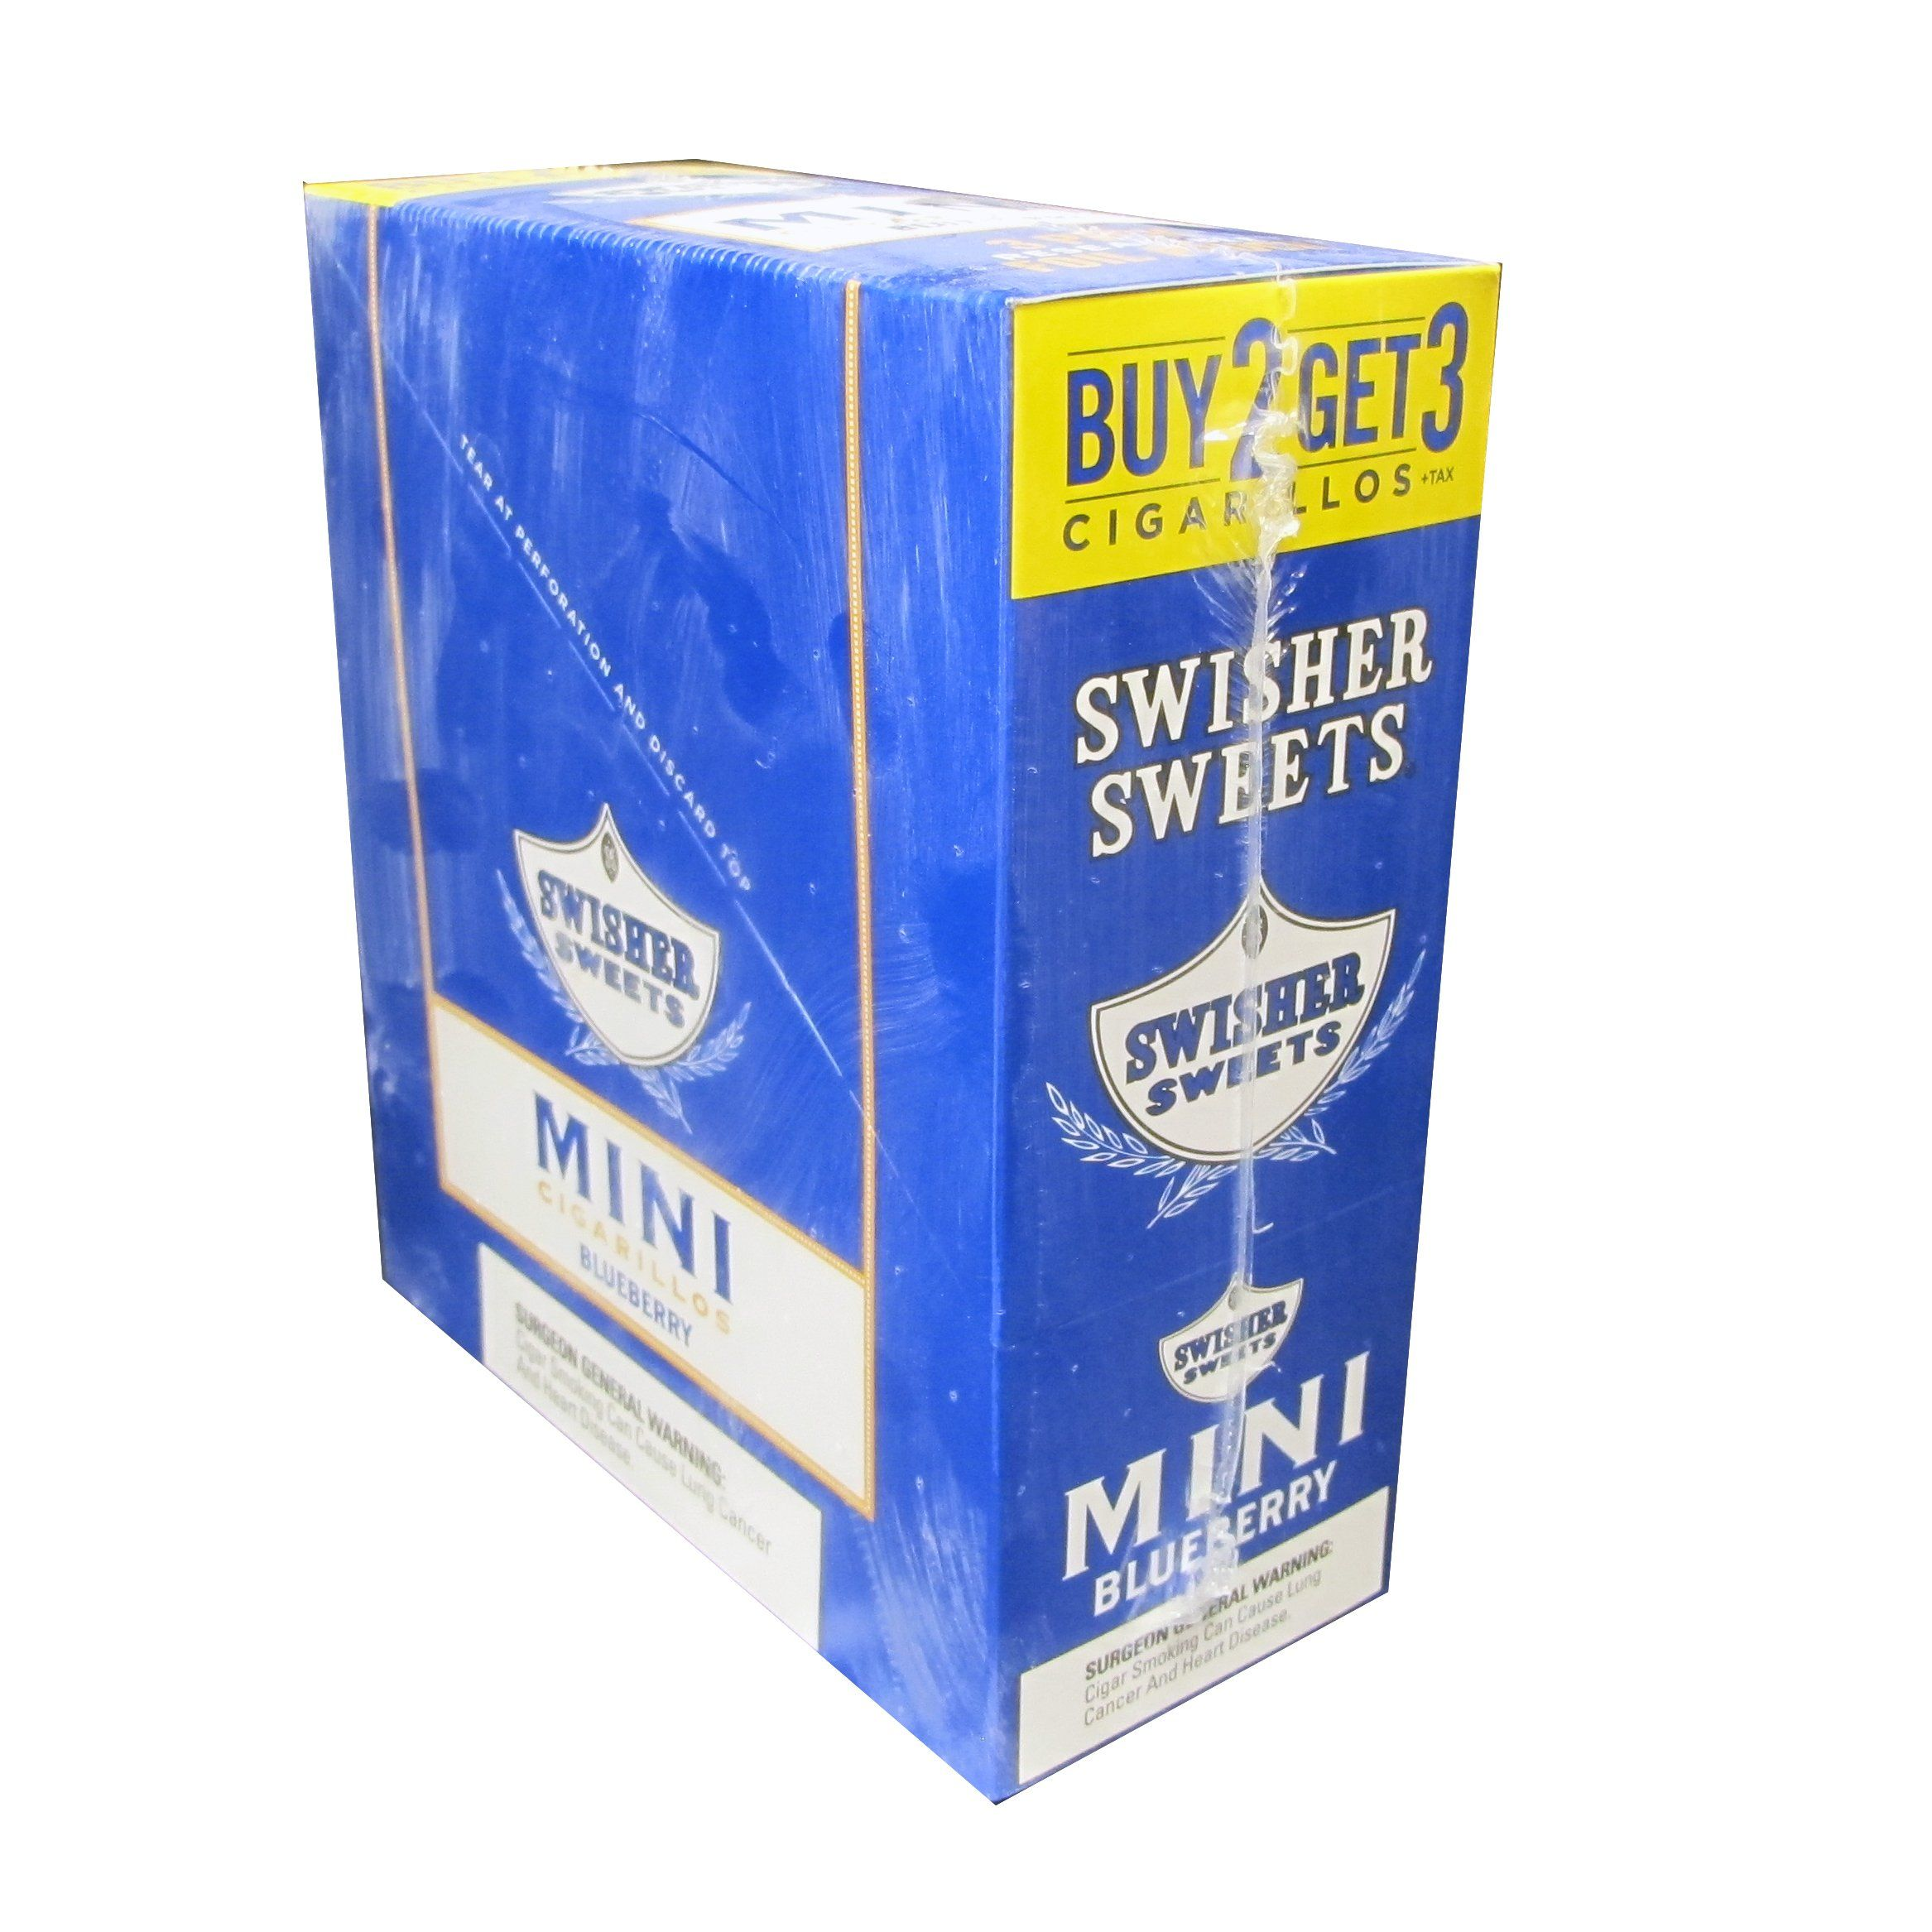 Swisher Sweets Mini Cigarillos Bluberry 3x15 (45ct)